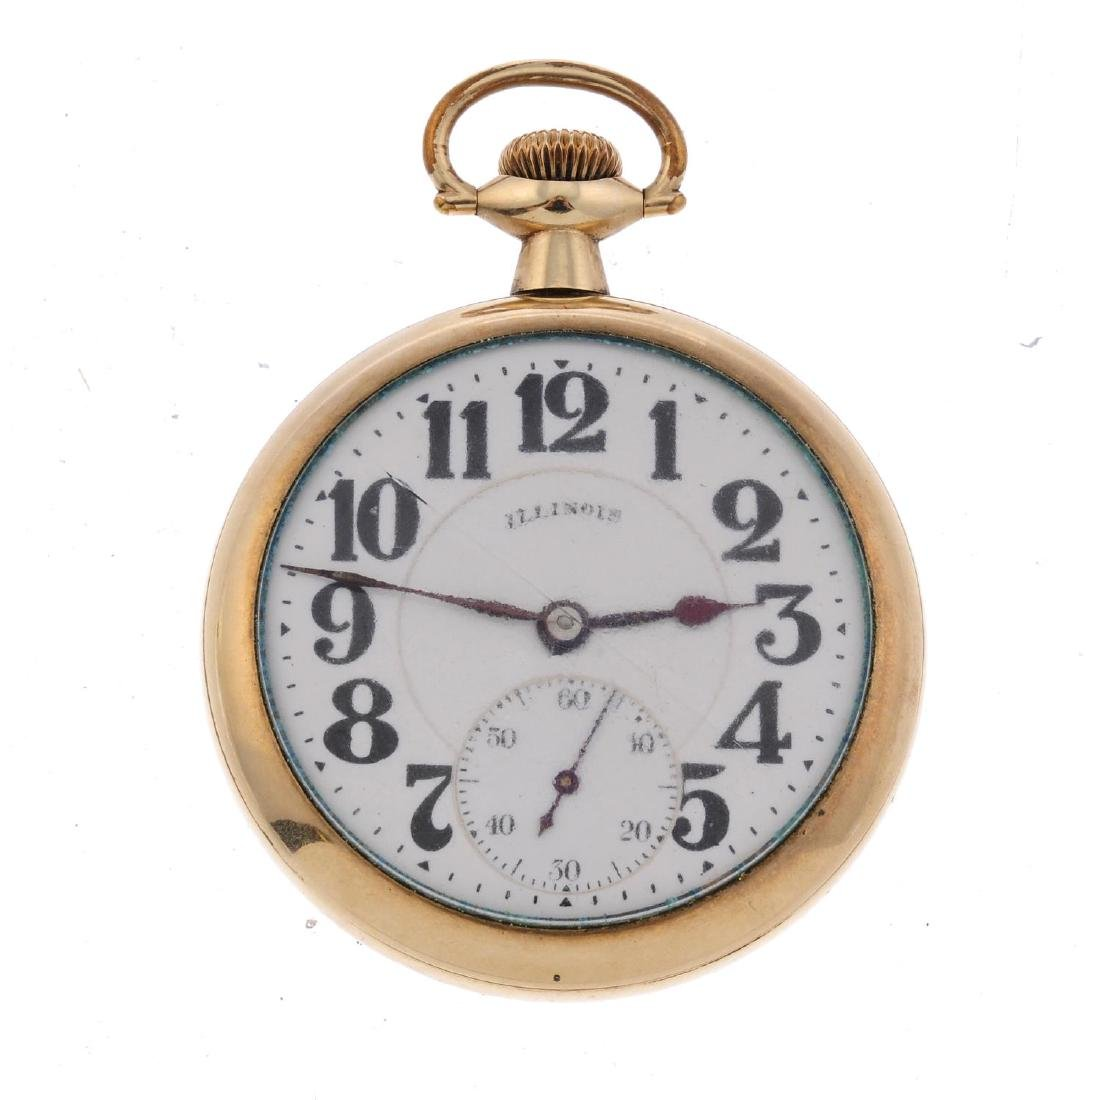 An open face railroad grade pocket watch by Illinois.